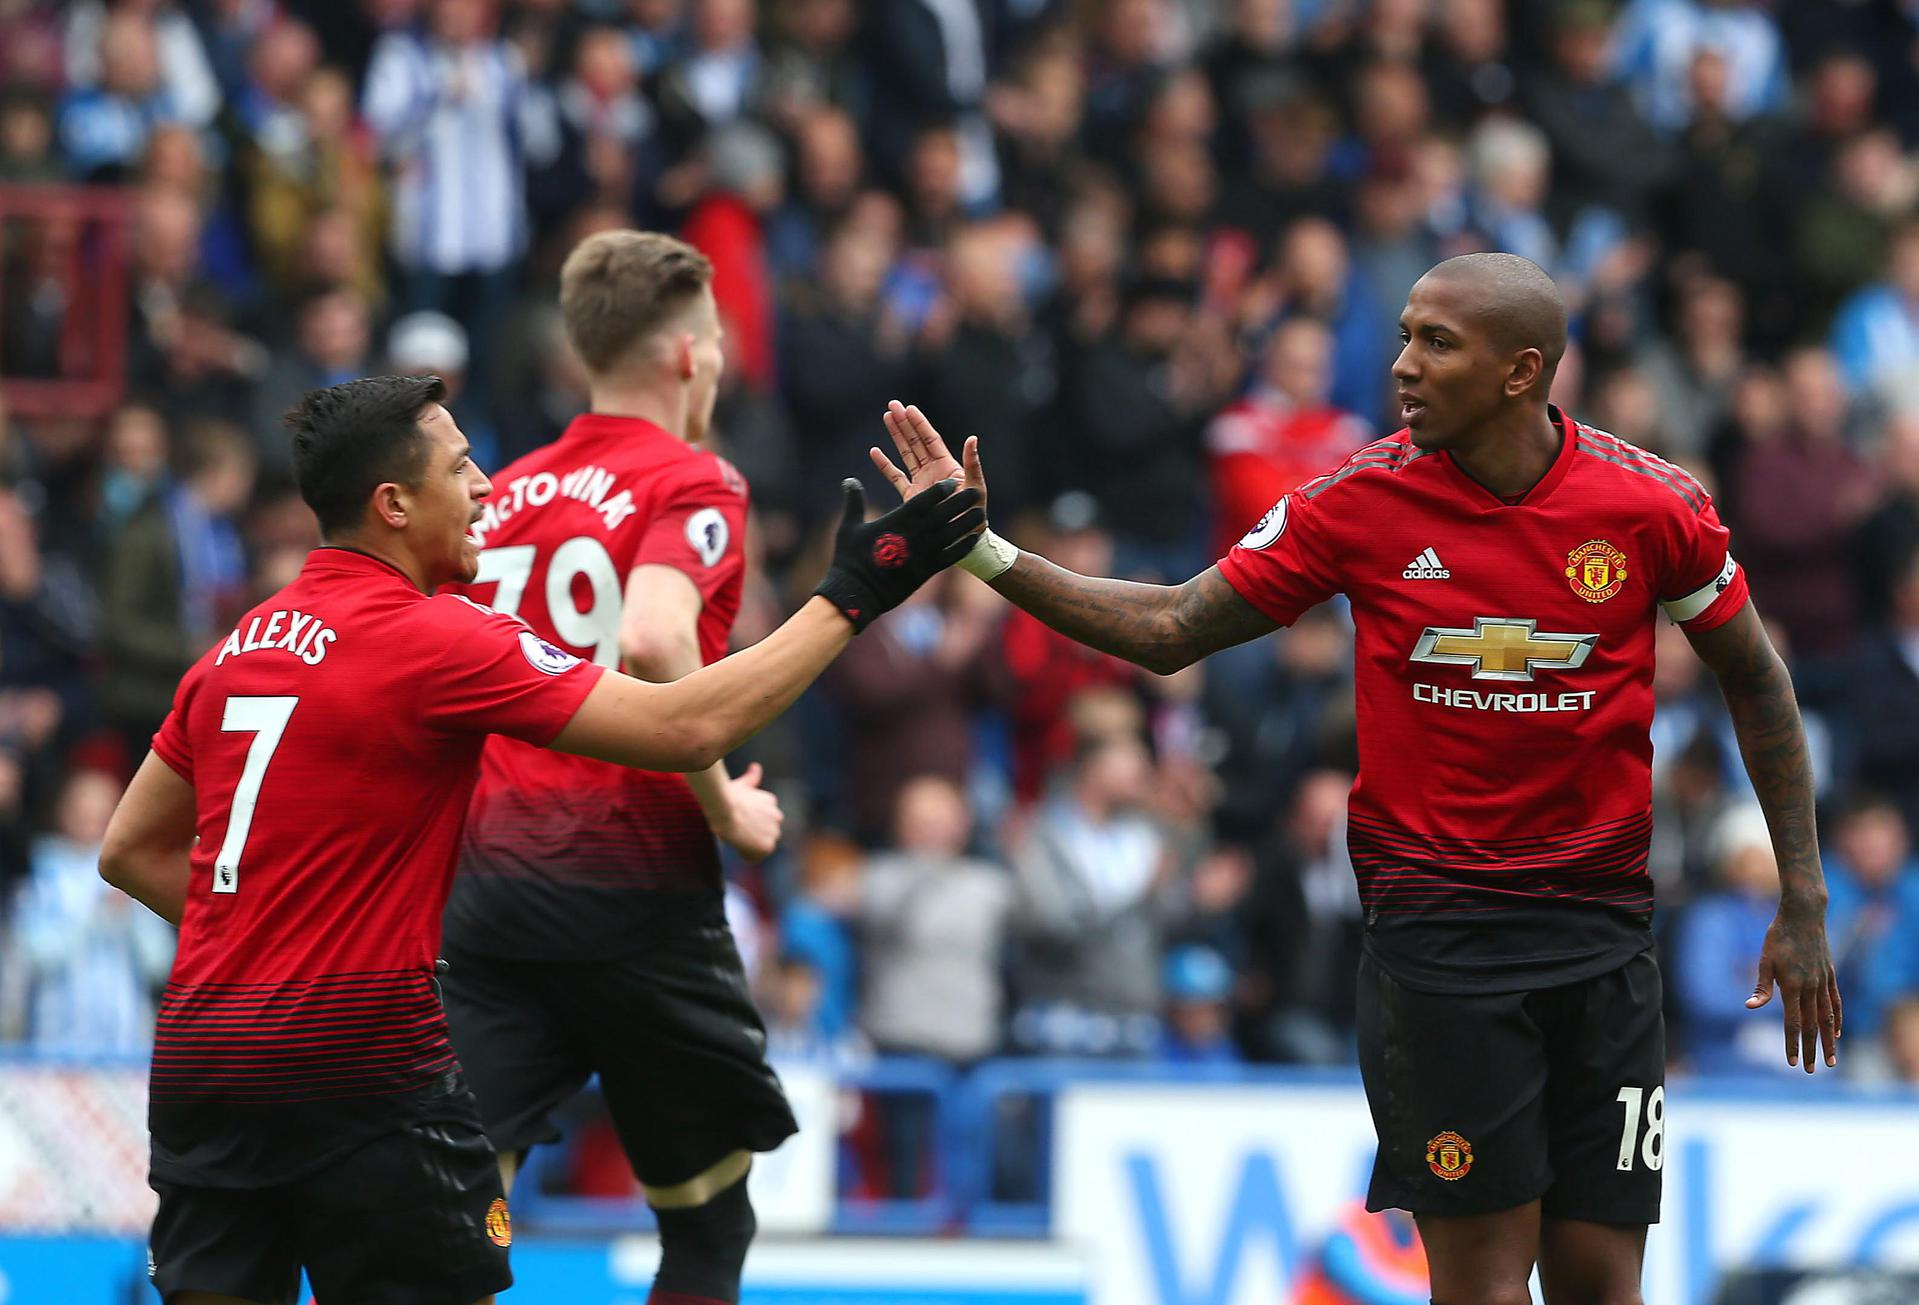 Ashley Young and Alexis Sanchez,